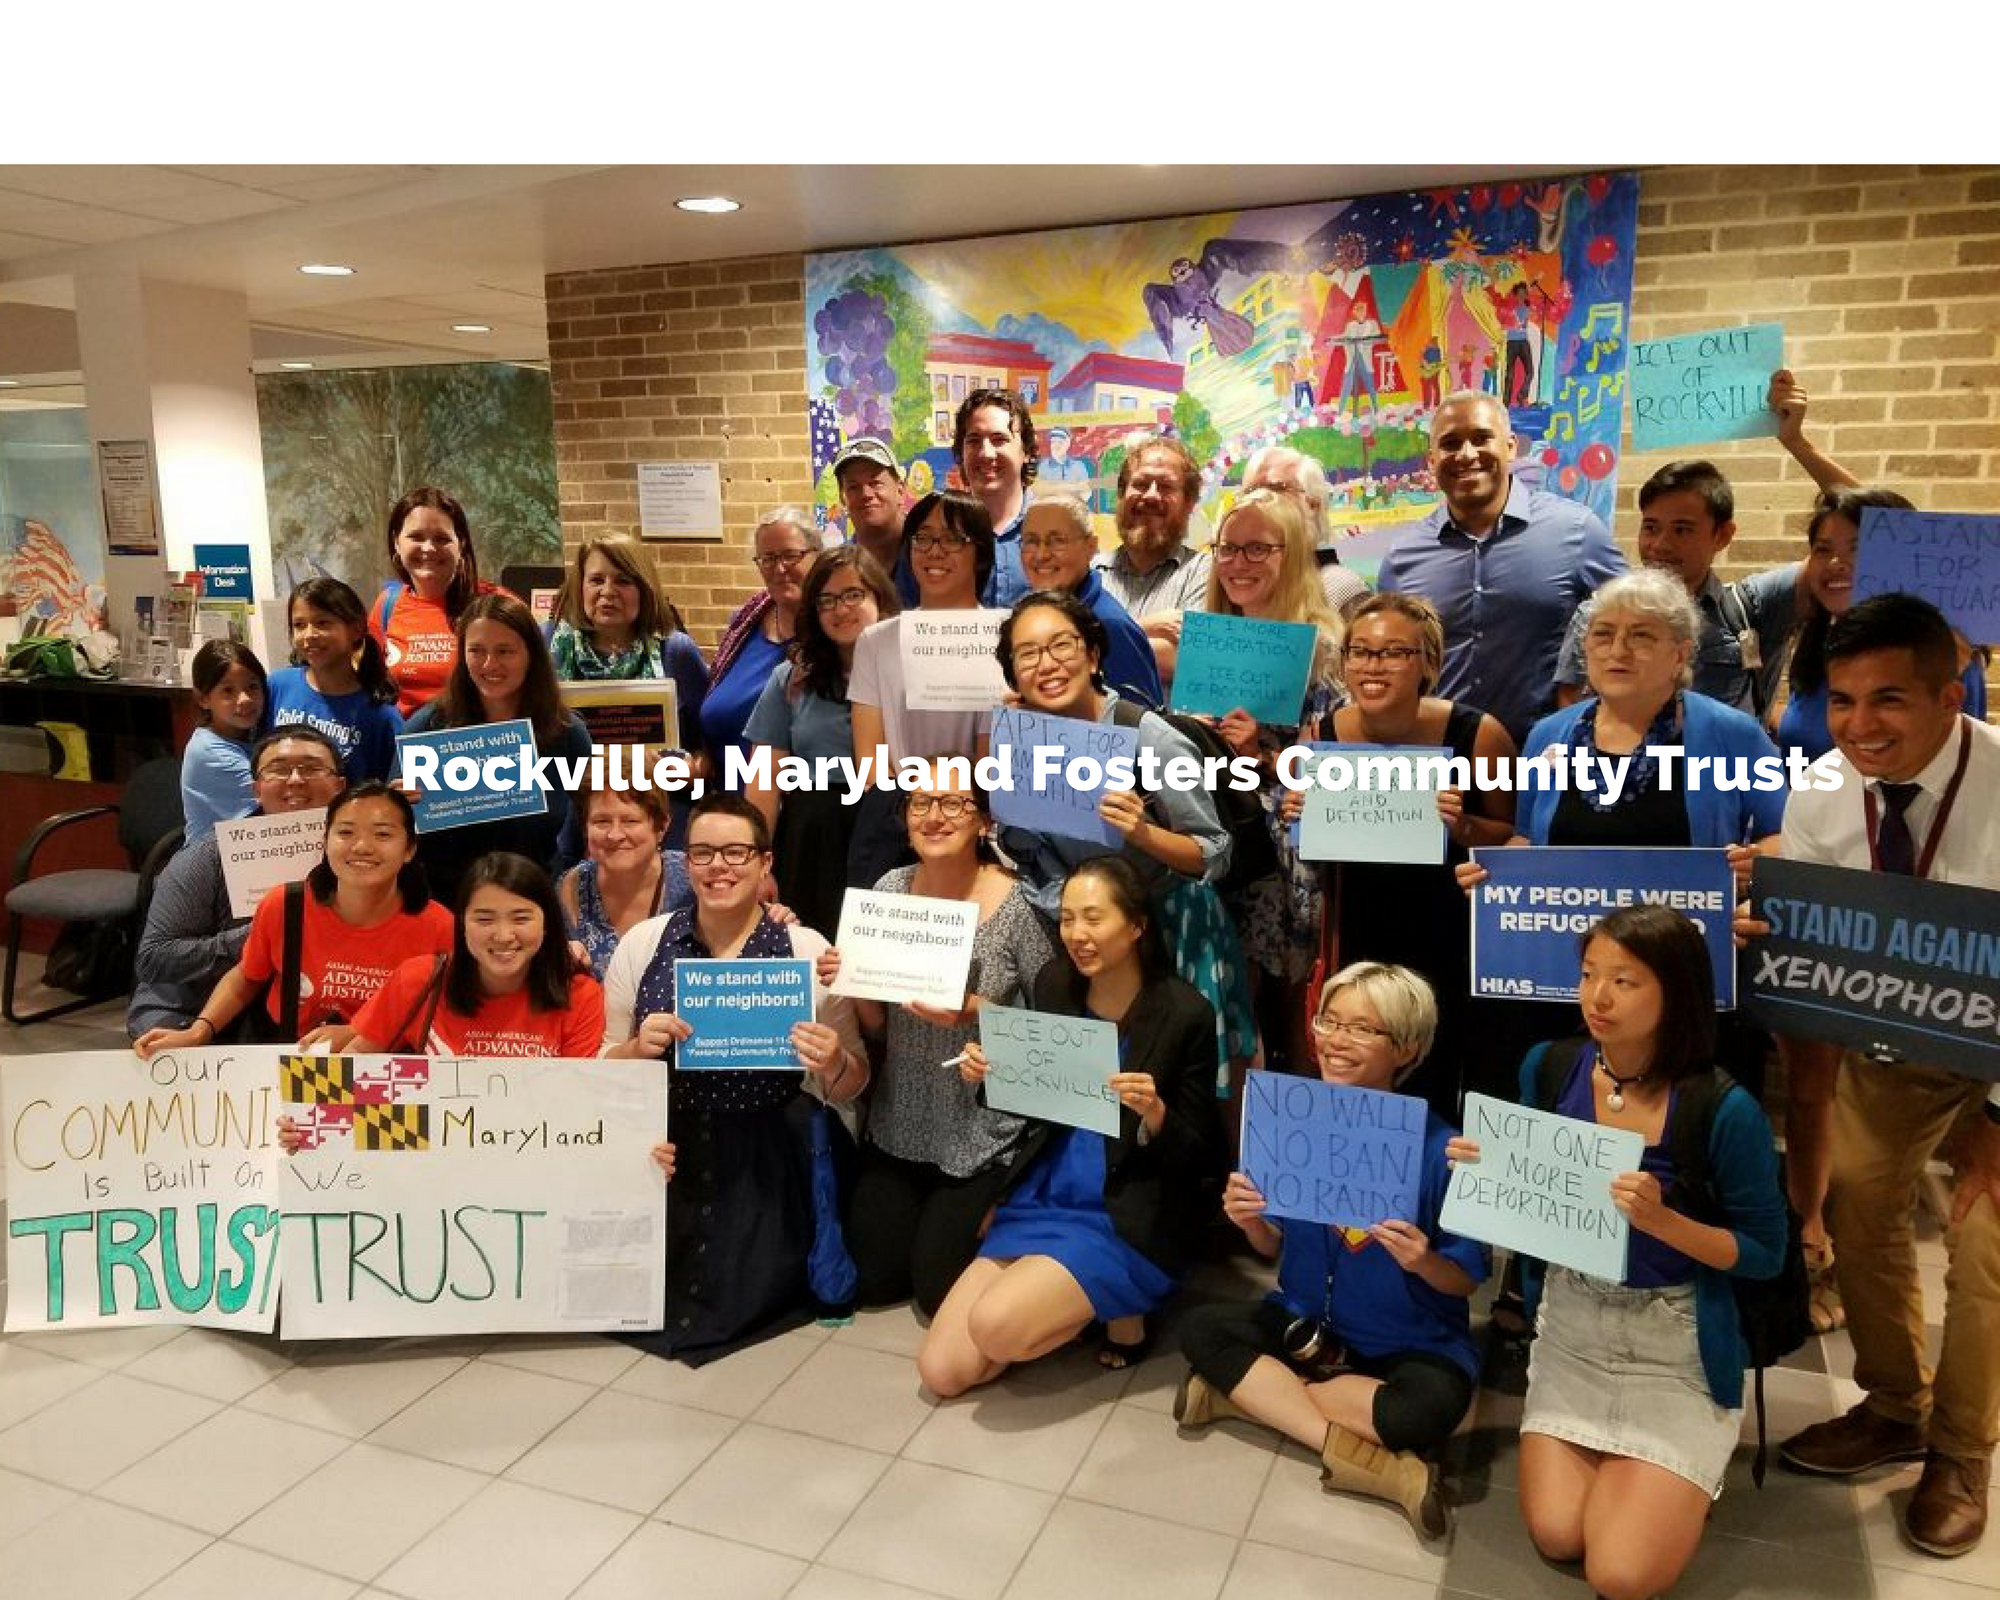 Rockville, Maryland Passes -Fostering Community Trust-